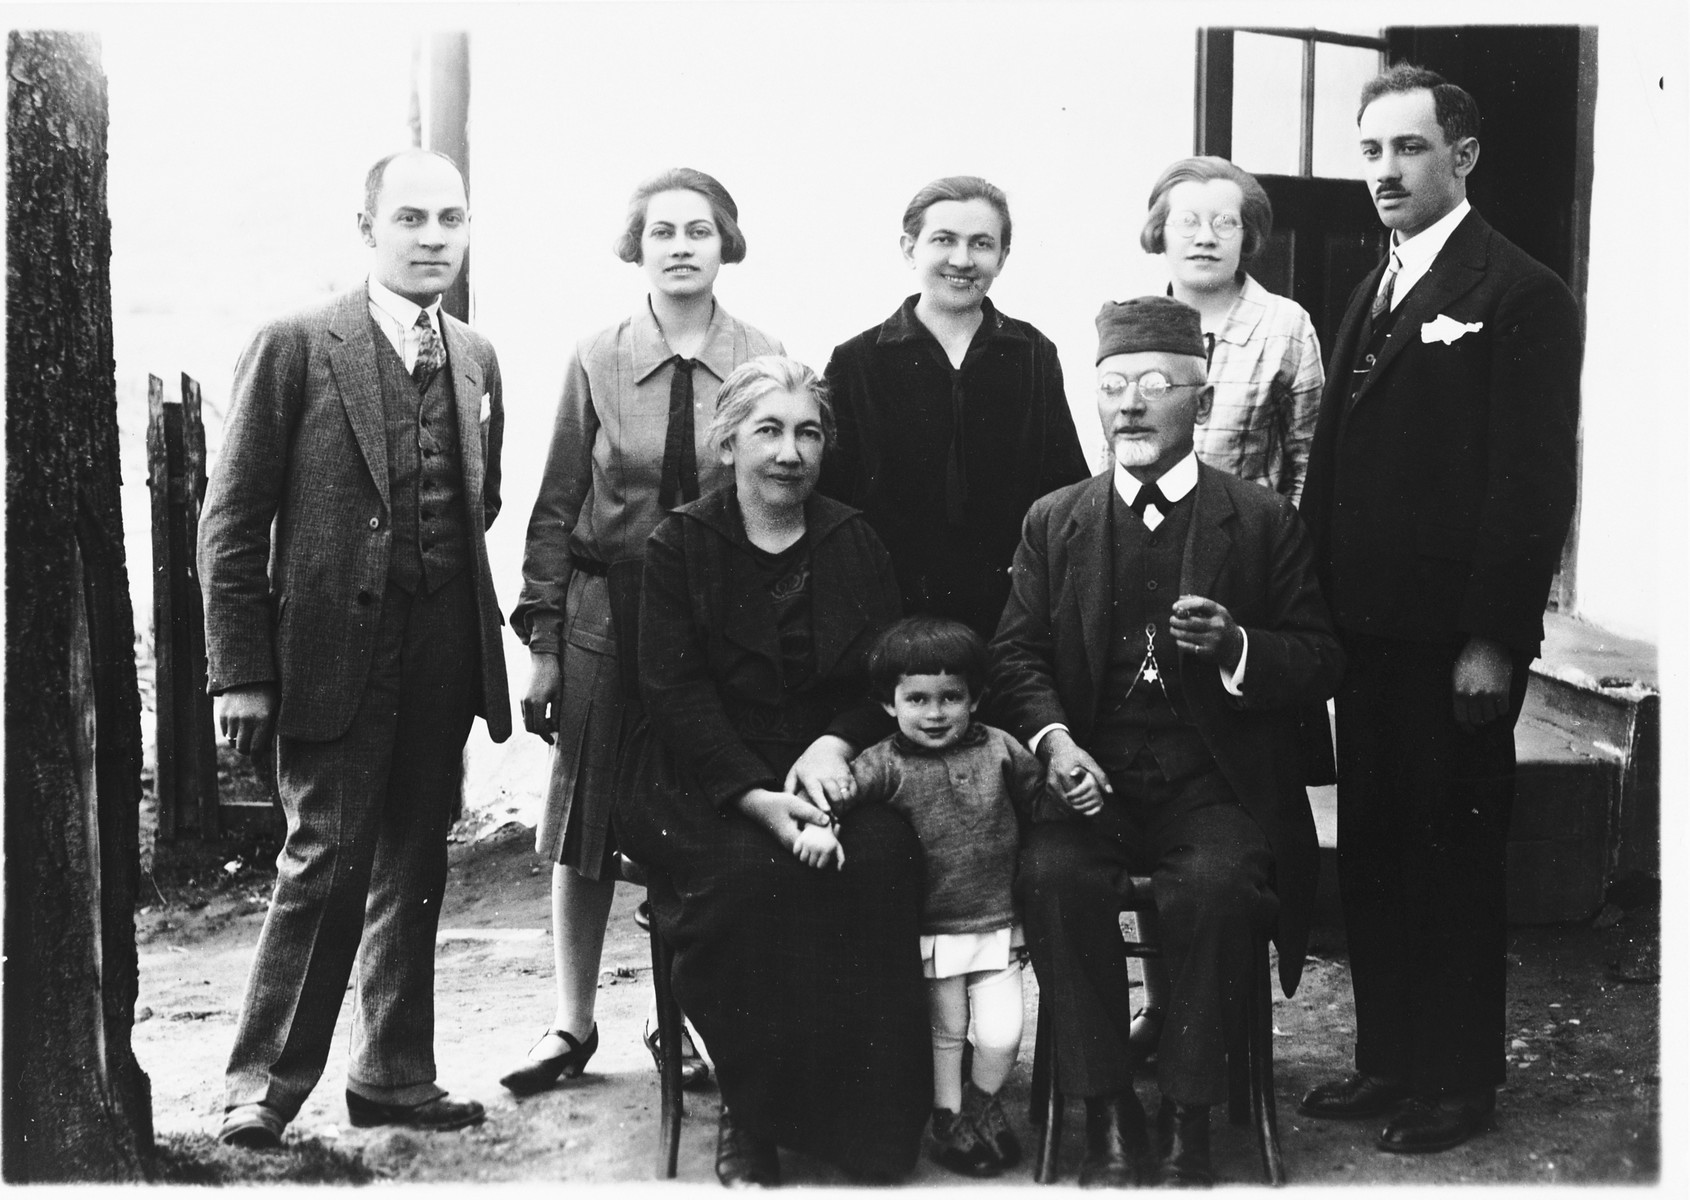 Group portrait of membes of the Deutsch family in front of their home in Ludbreg, Croatia.  Pictured in the front row from left to right are: Katarina Deutsch, Zdenka Apler and Rabbi Leopold Deutsch.  Second row: Rudi Apler, Blanka Apler, Giza Deutsch, Silva Deutsch and Erne Deutsch.